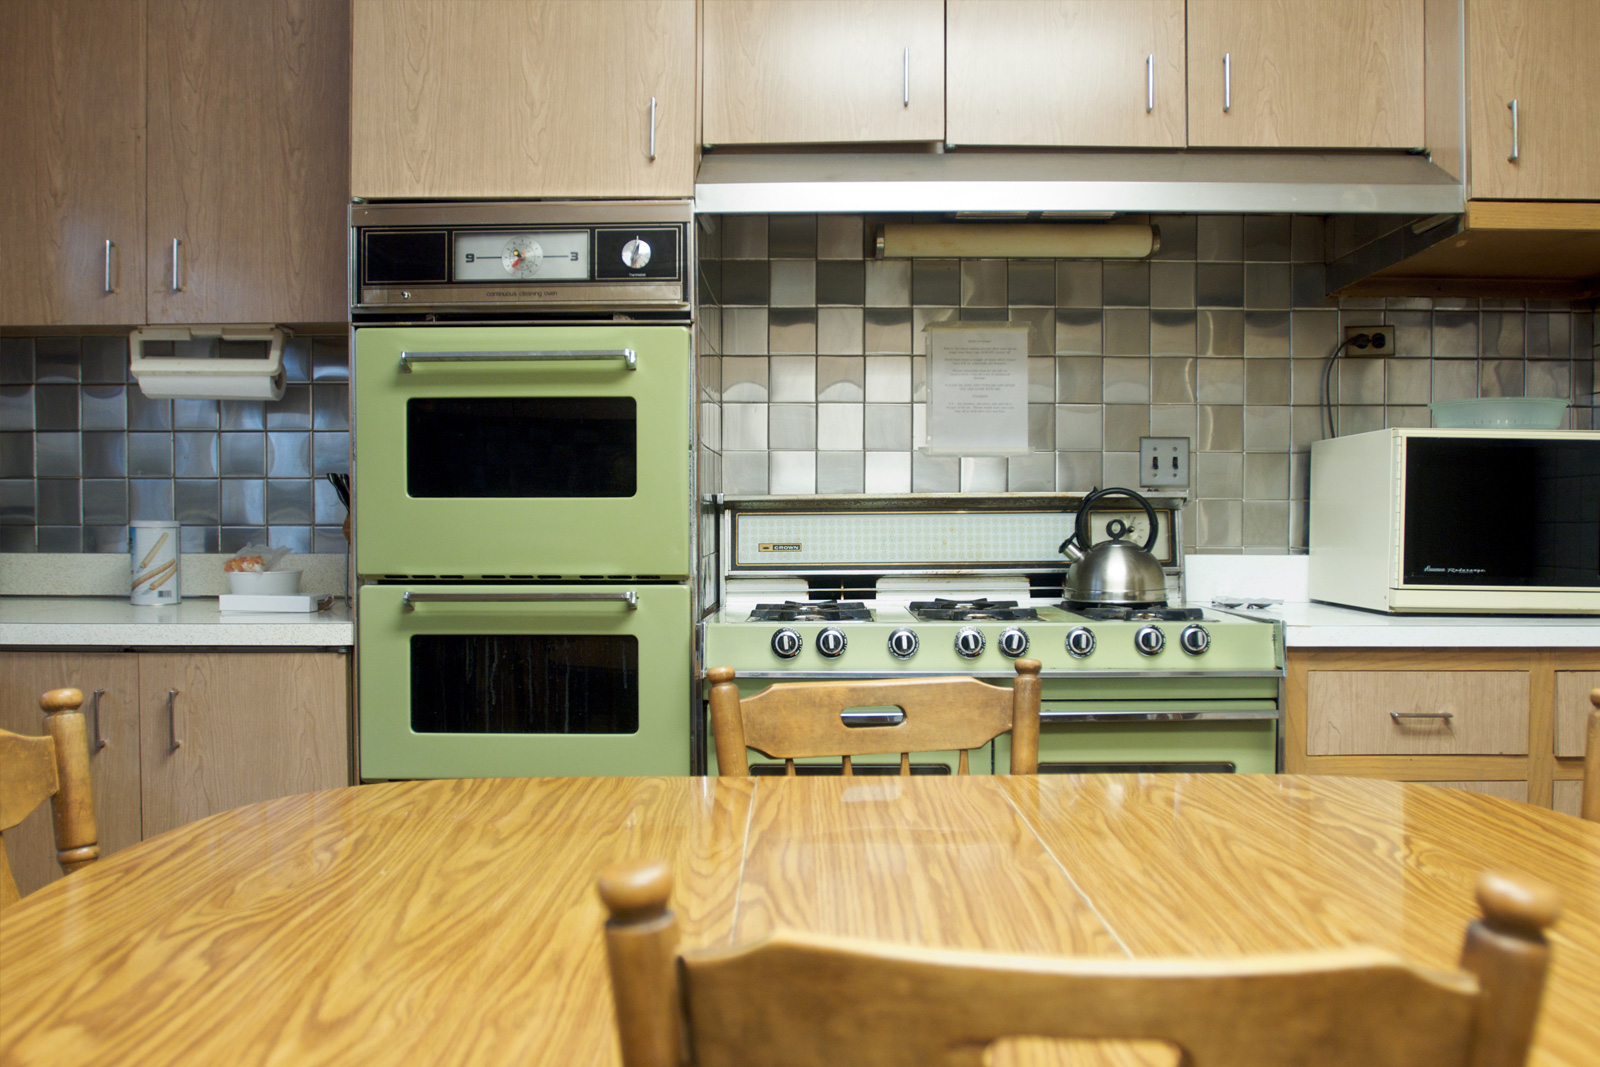 smart options kitchen flooring cheap kitchen flooring Avocado green kitchen